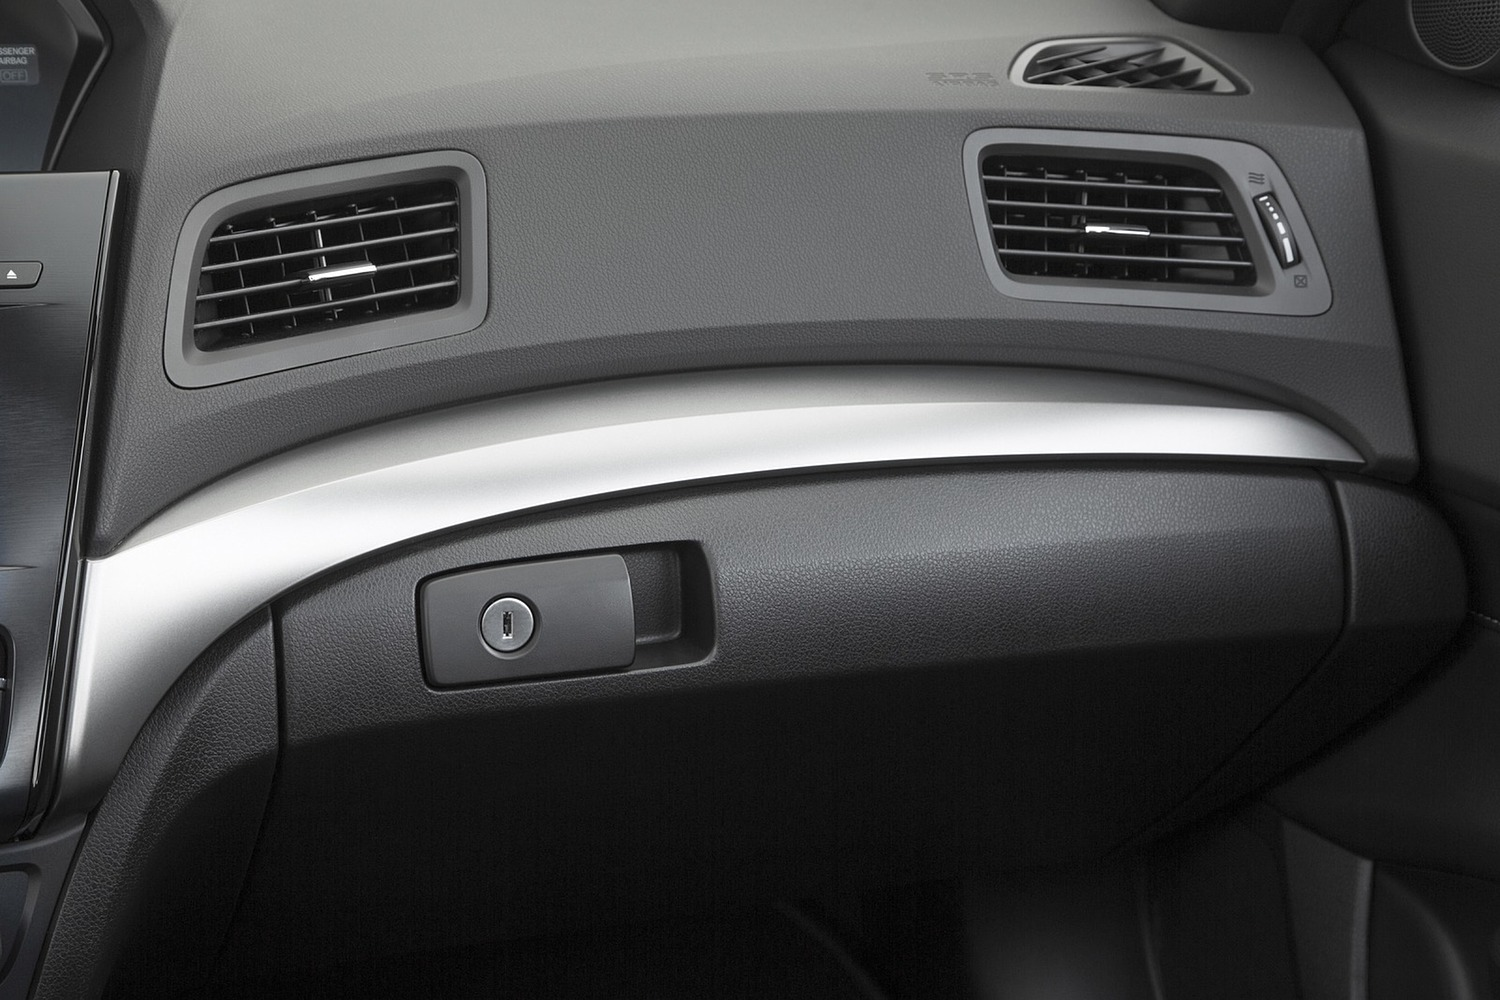 Acura ILX Technology Plus and A-SPEC Packages Sedan Interior Detail (2016 model year shown)